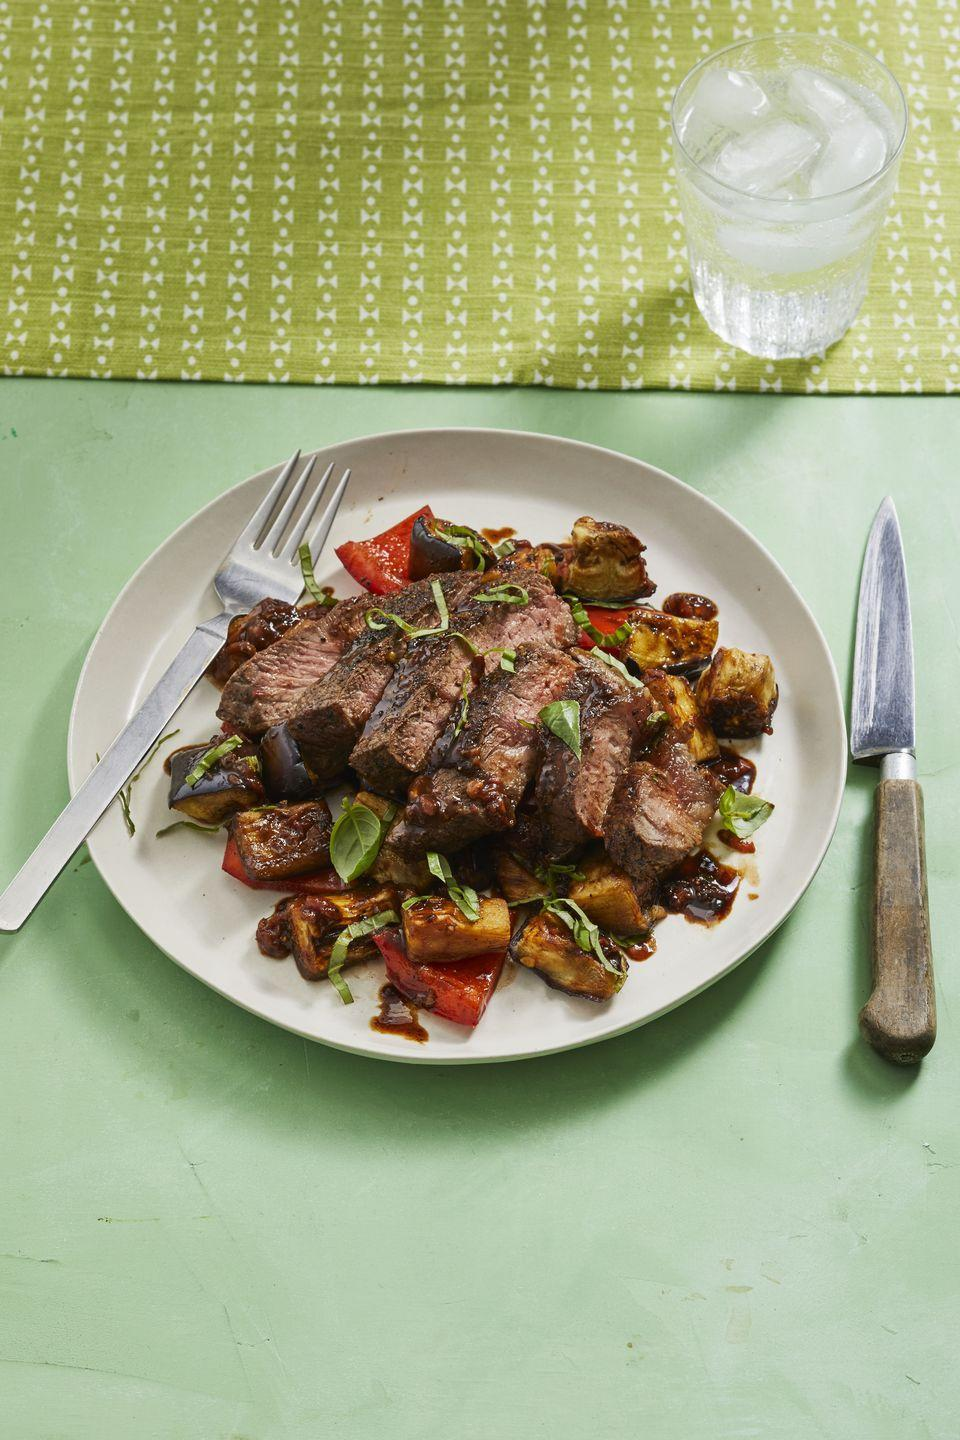 """<p>Gluten-free and filling, this dish is destined to become a new family favorite.</p><p><a href=""""https://www.womansday.com/food-recipes/food-drinks/a28354436/balsamic-steak-with-eggplant-and-peppers-recipe/"""" rel=""""nofollow noopener"""" target=""""_blank"""" data-ylk=""""slk:Get the recipe for Balsamic Steak with Eggplant and Peppers."""" class=""""link rapid-noclick-resp""""><em>Get the recipe for Balsamic Steak with Eggplant and Peppers.</em></a></p>"""